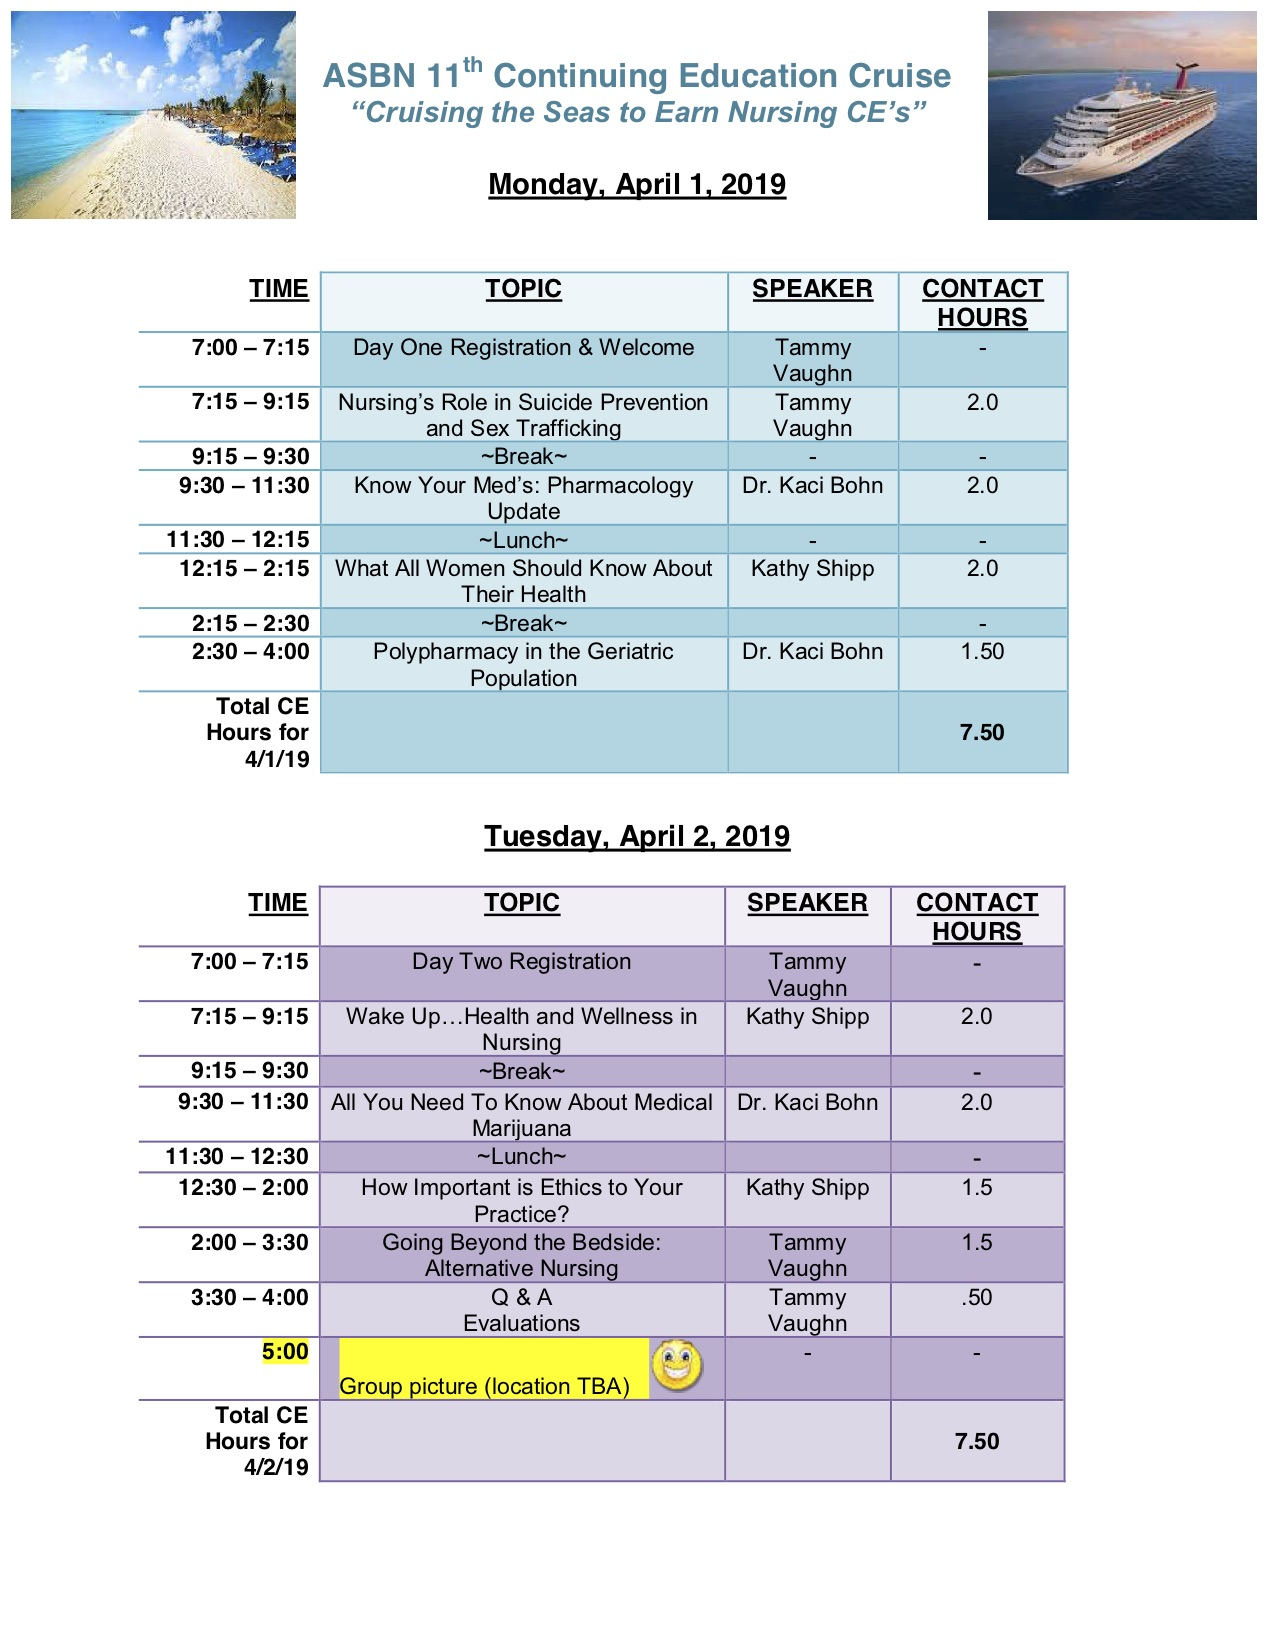 Cruise Itinerary-Revised May 2018.jpg